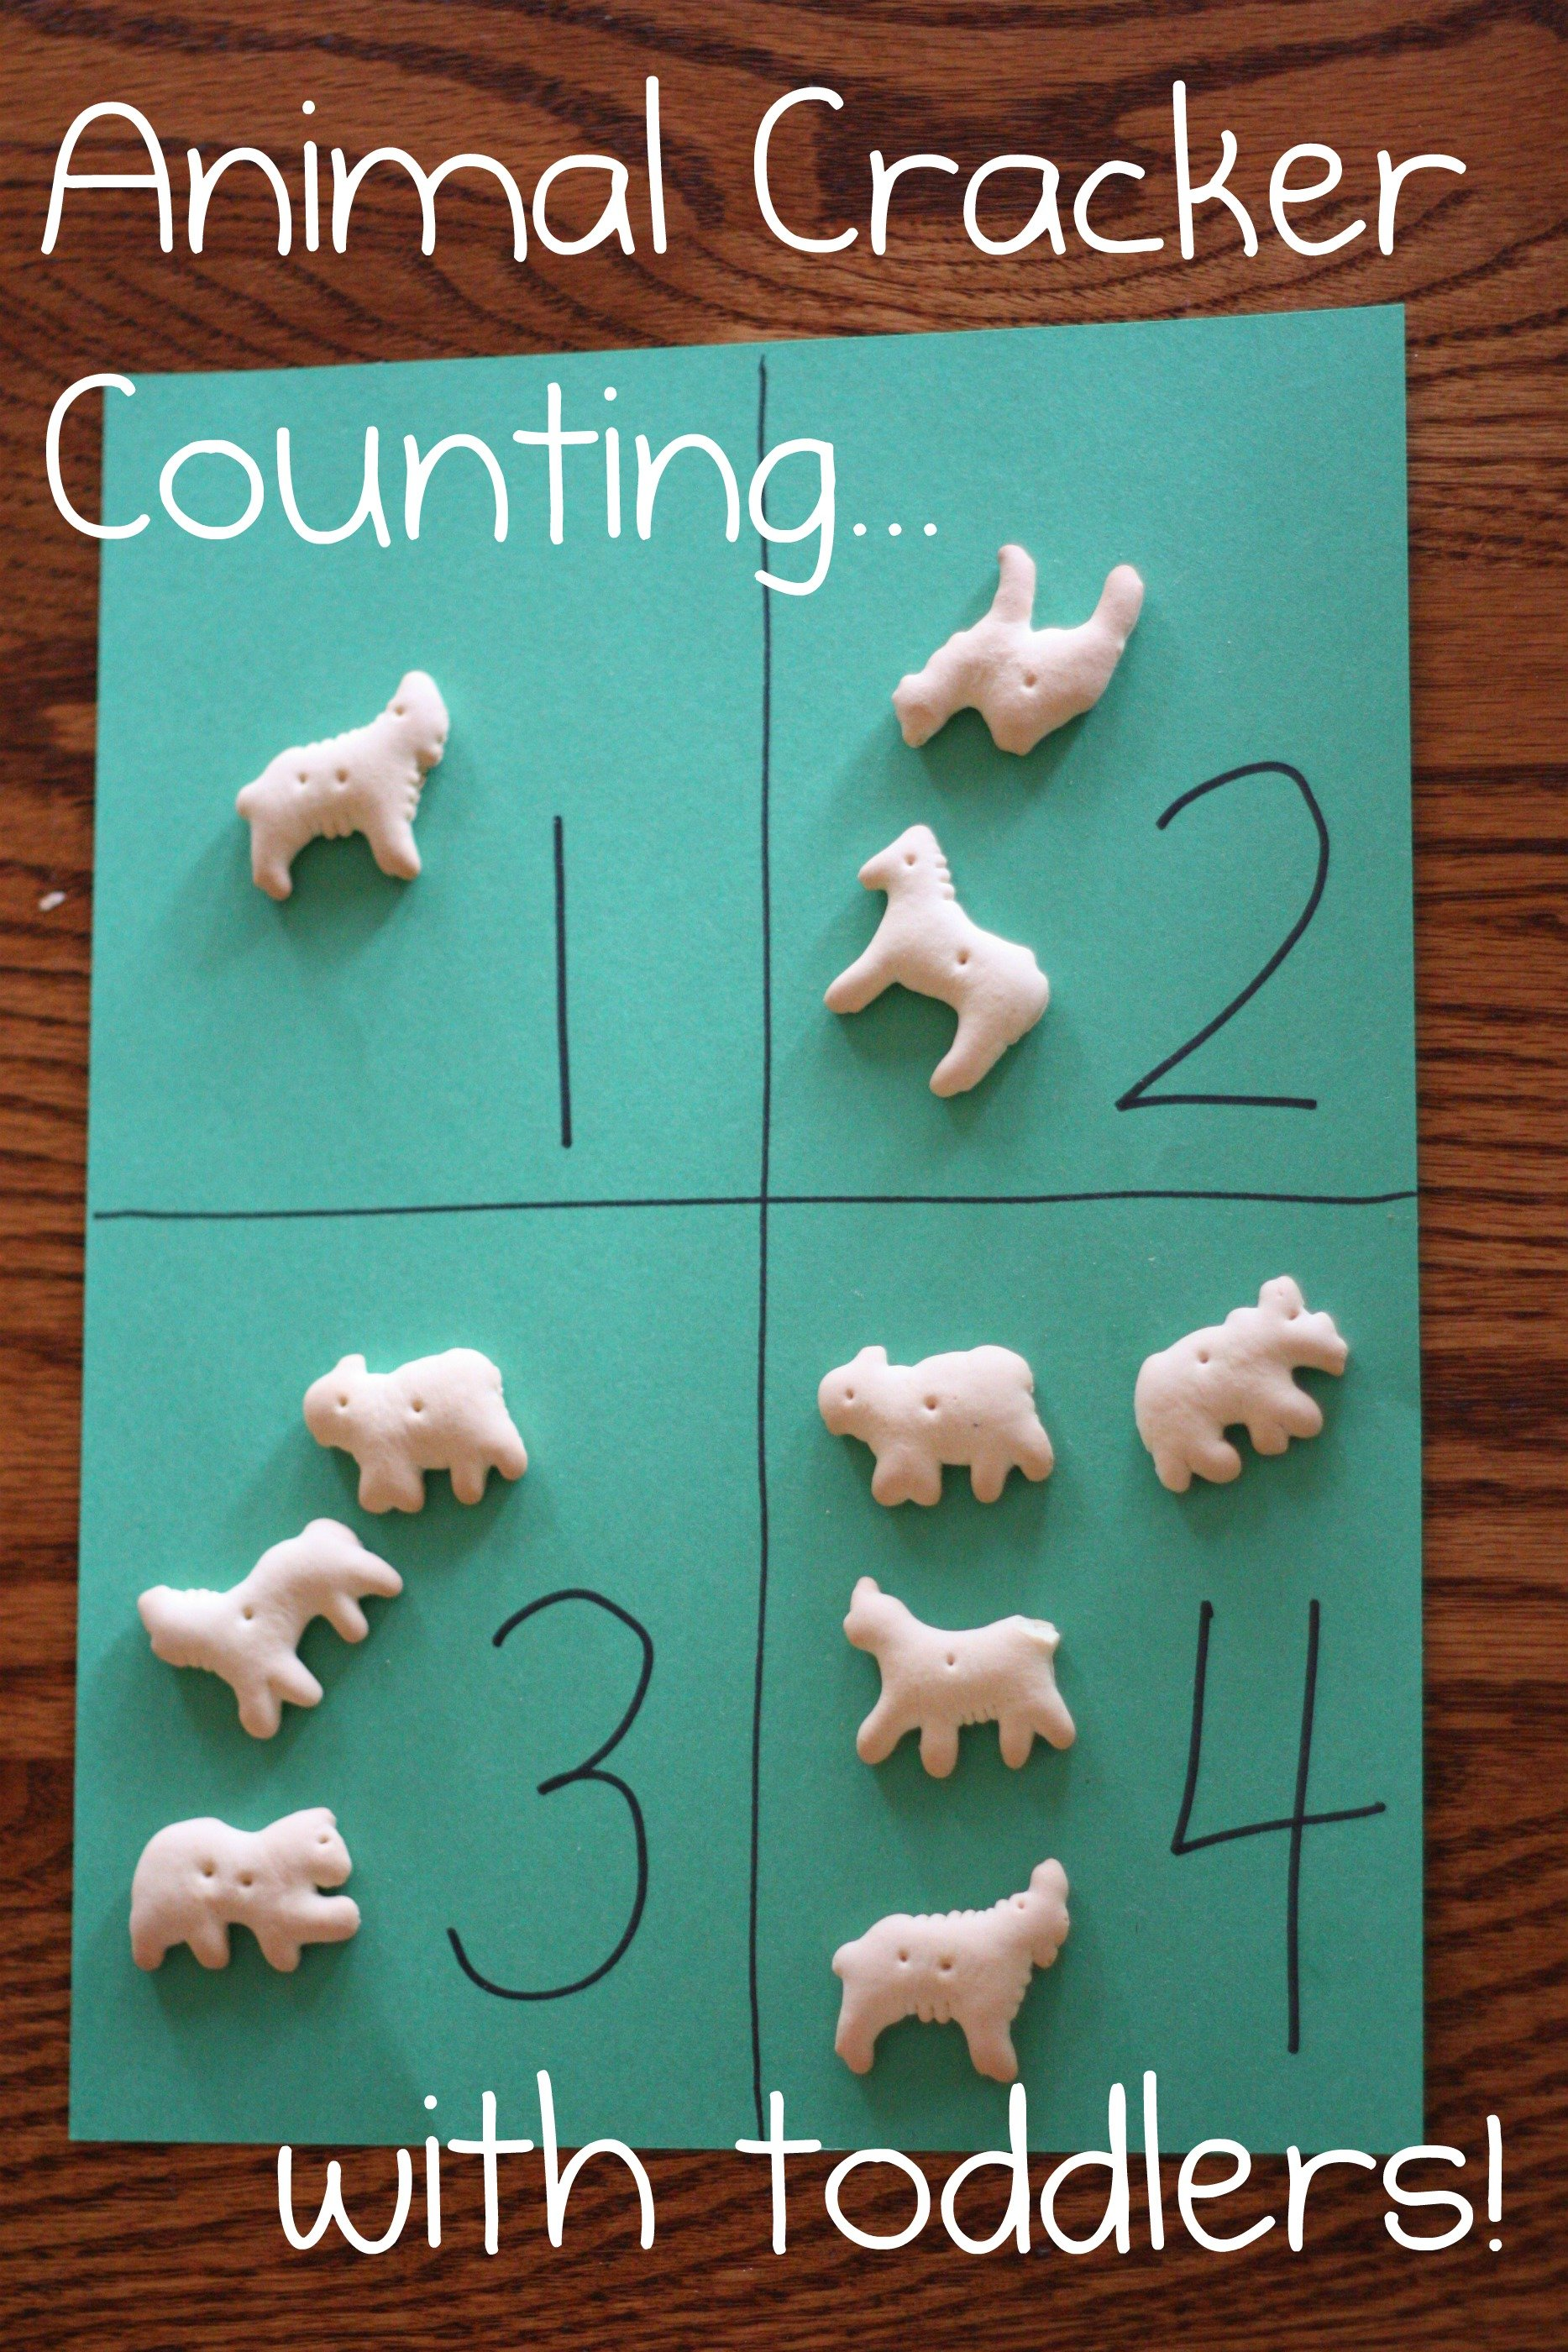 animal cracker counting activities toddler math correspondence crafts learning zoo preschool toddlers crackers games theme circus practice animals farm kindergarten